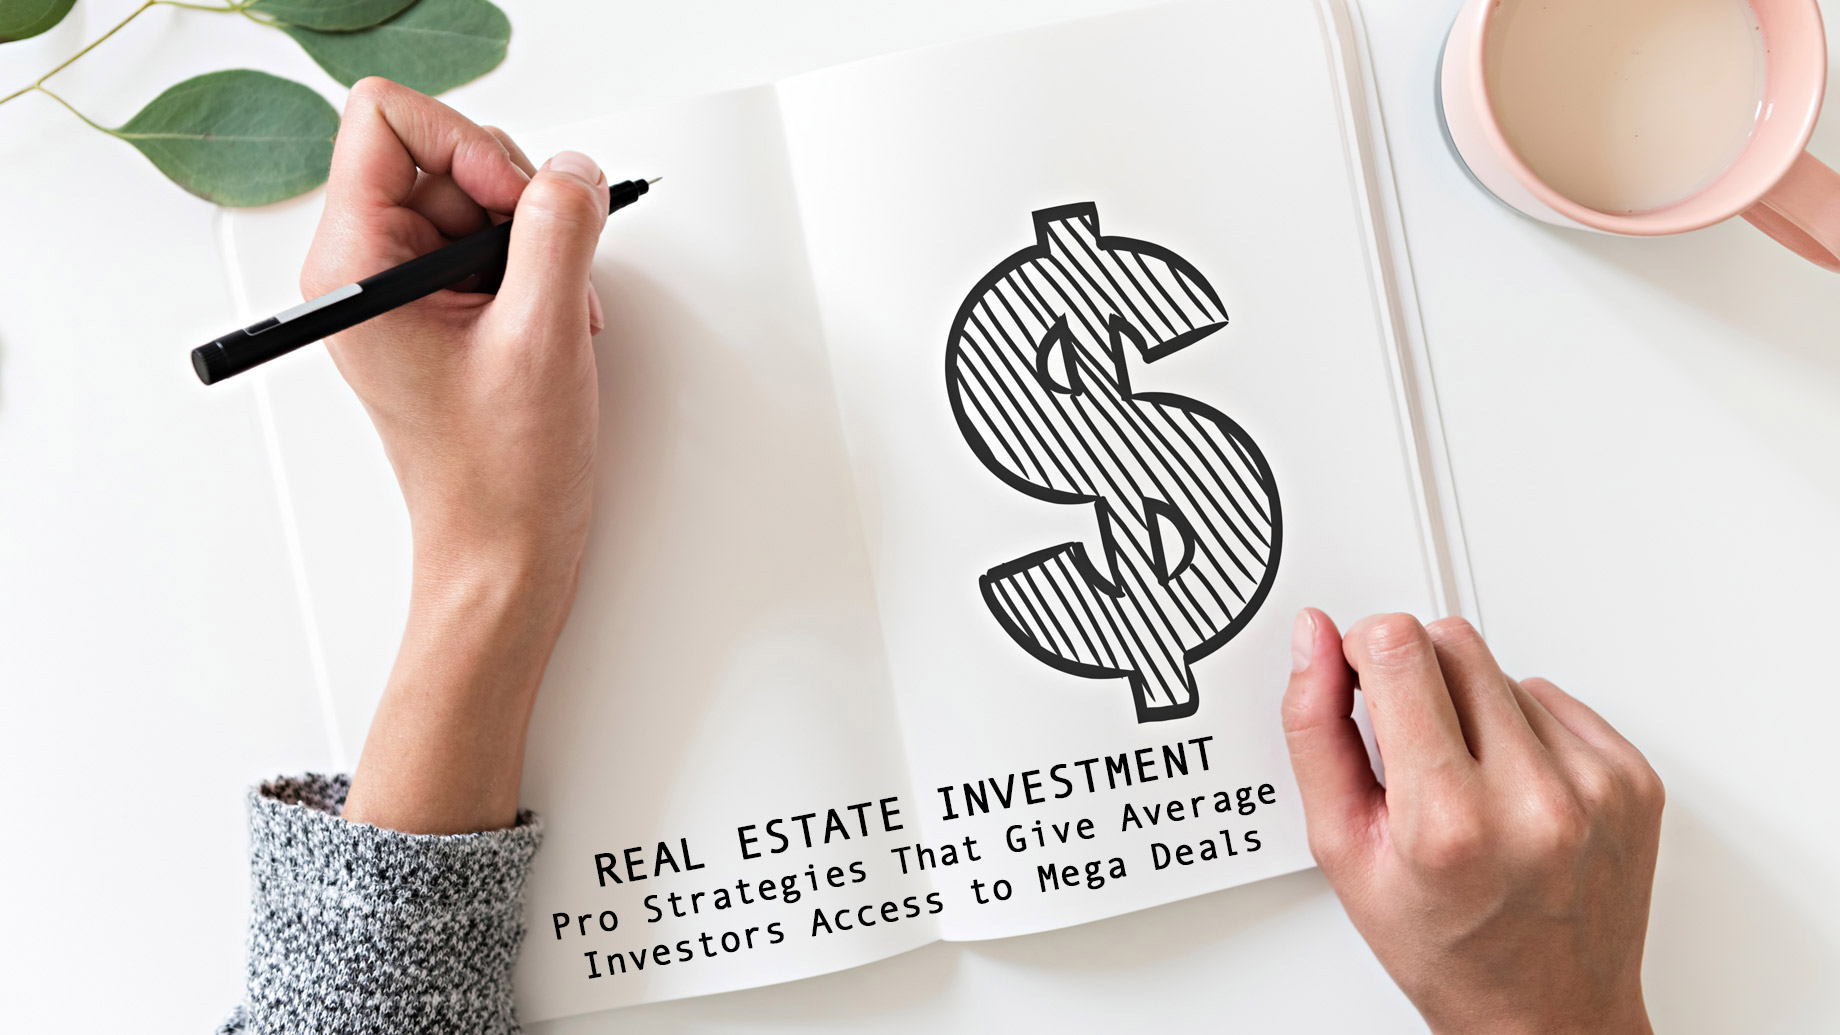 Real Estate Investment - Pro Strategies That Give Average Investors Access to Mega Deals